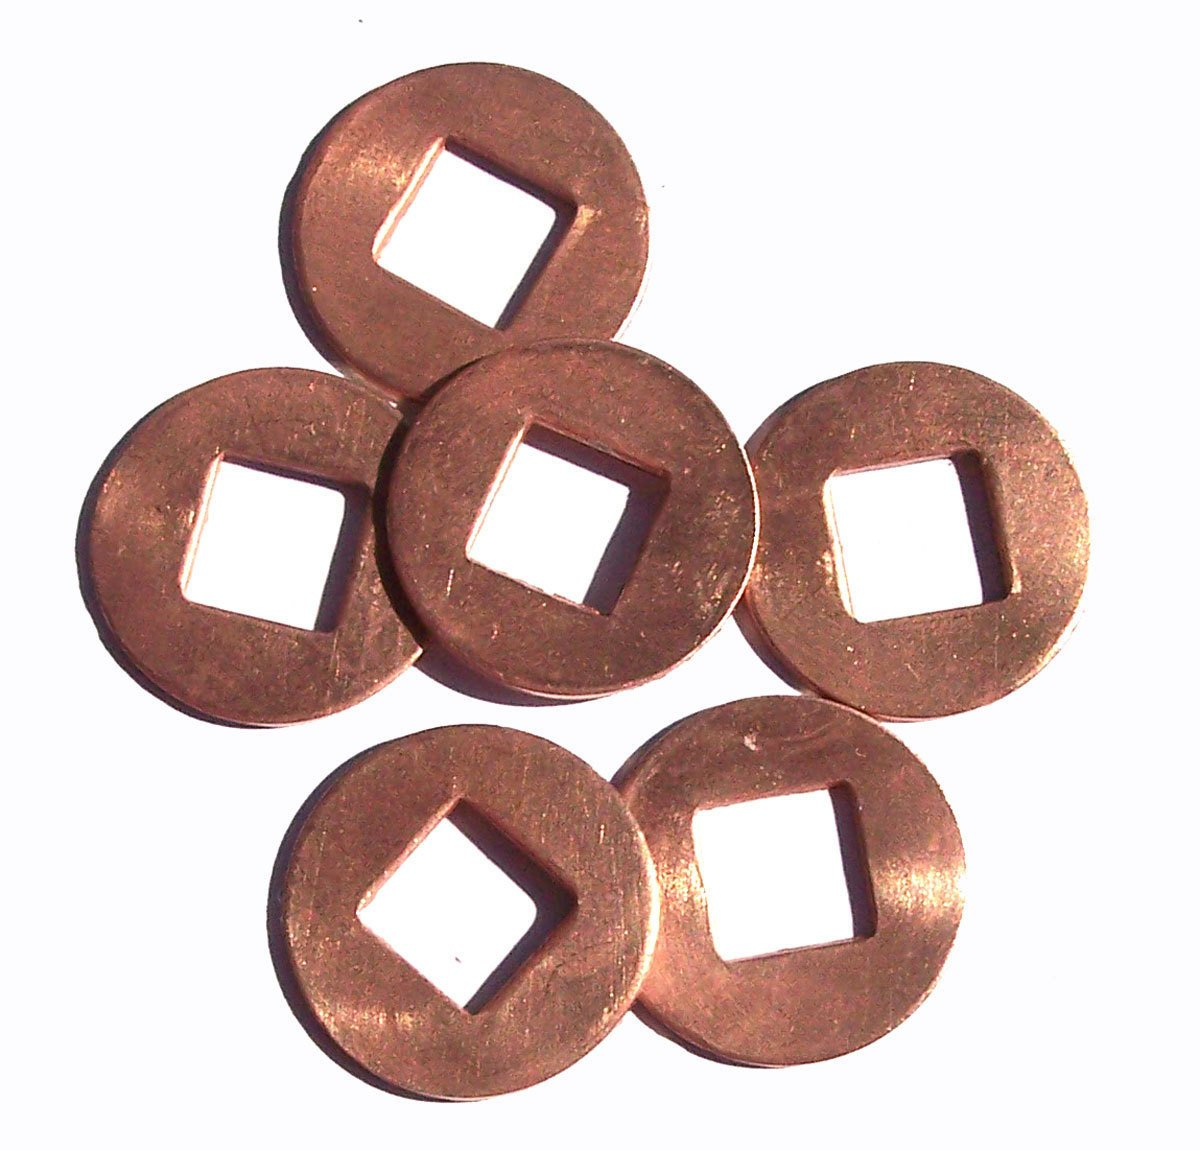 3/4 inch Copper Donut Washer 20mm Cutout for Enameling Stamping Texturing Blanks, Jewelry Supplies 20G